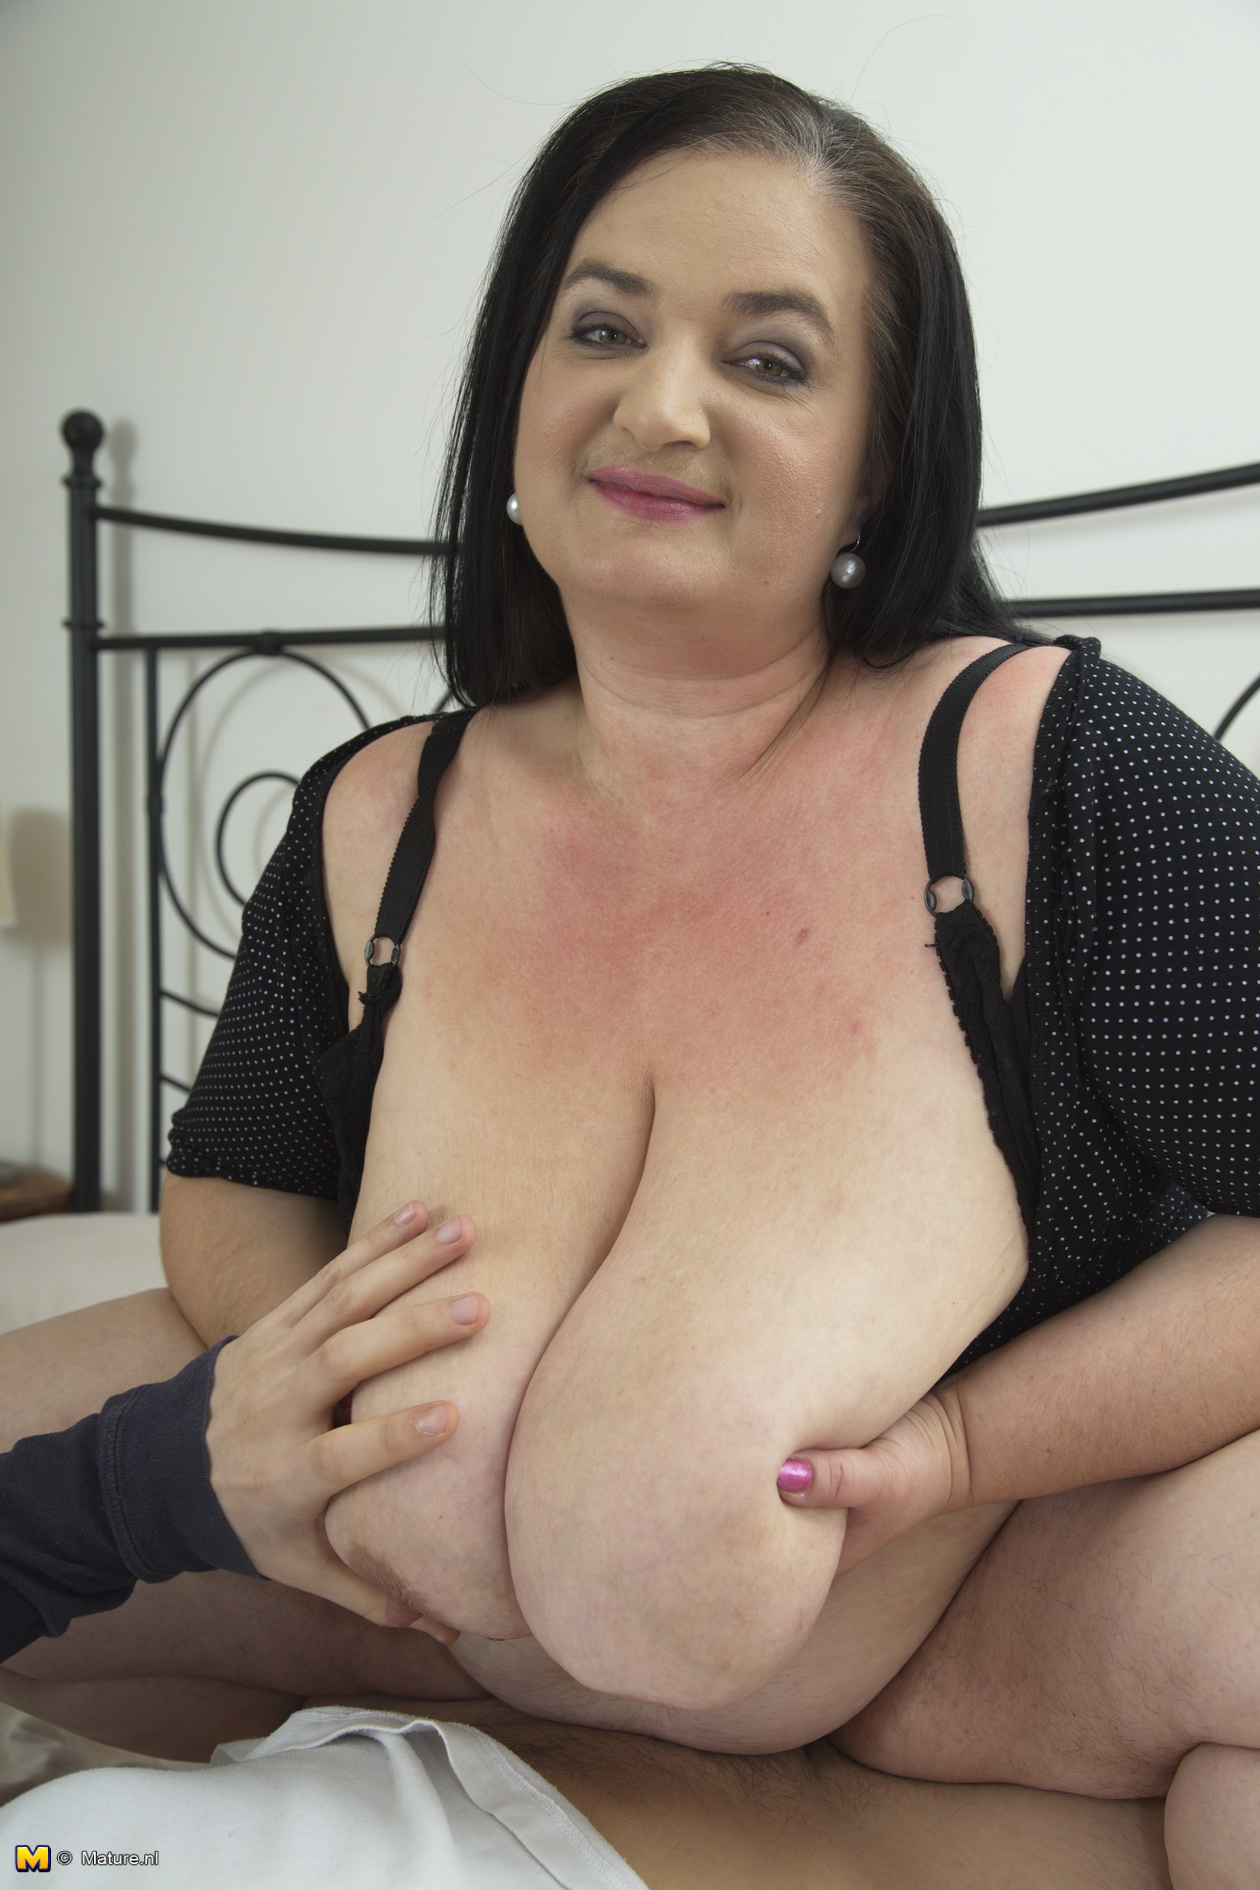 big breasted mature bbw getting it pov style - big boobs gallery